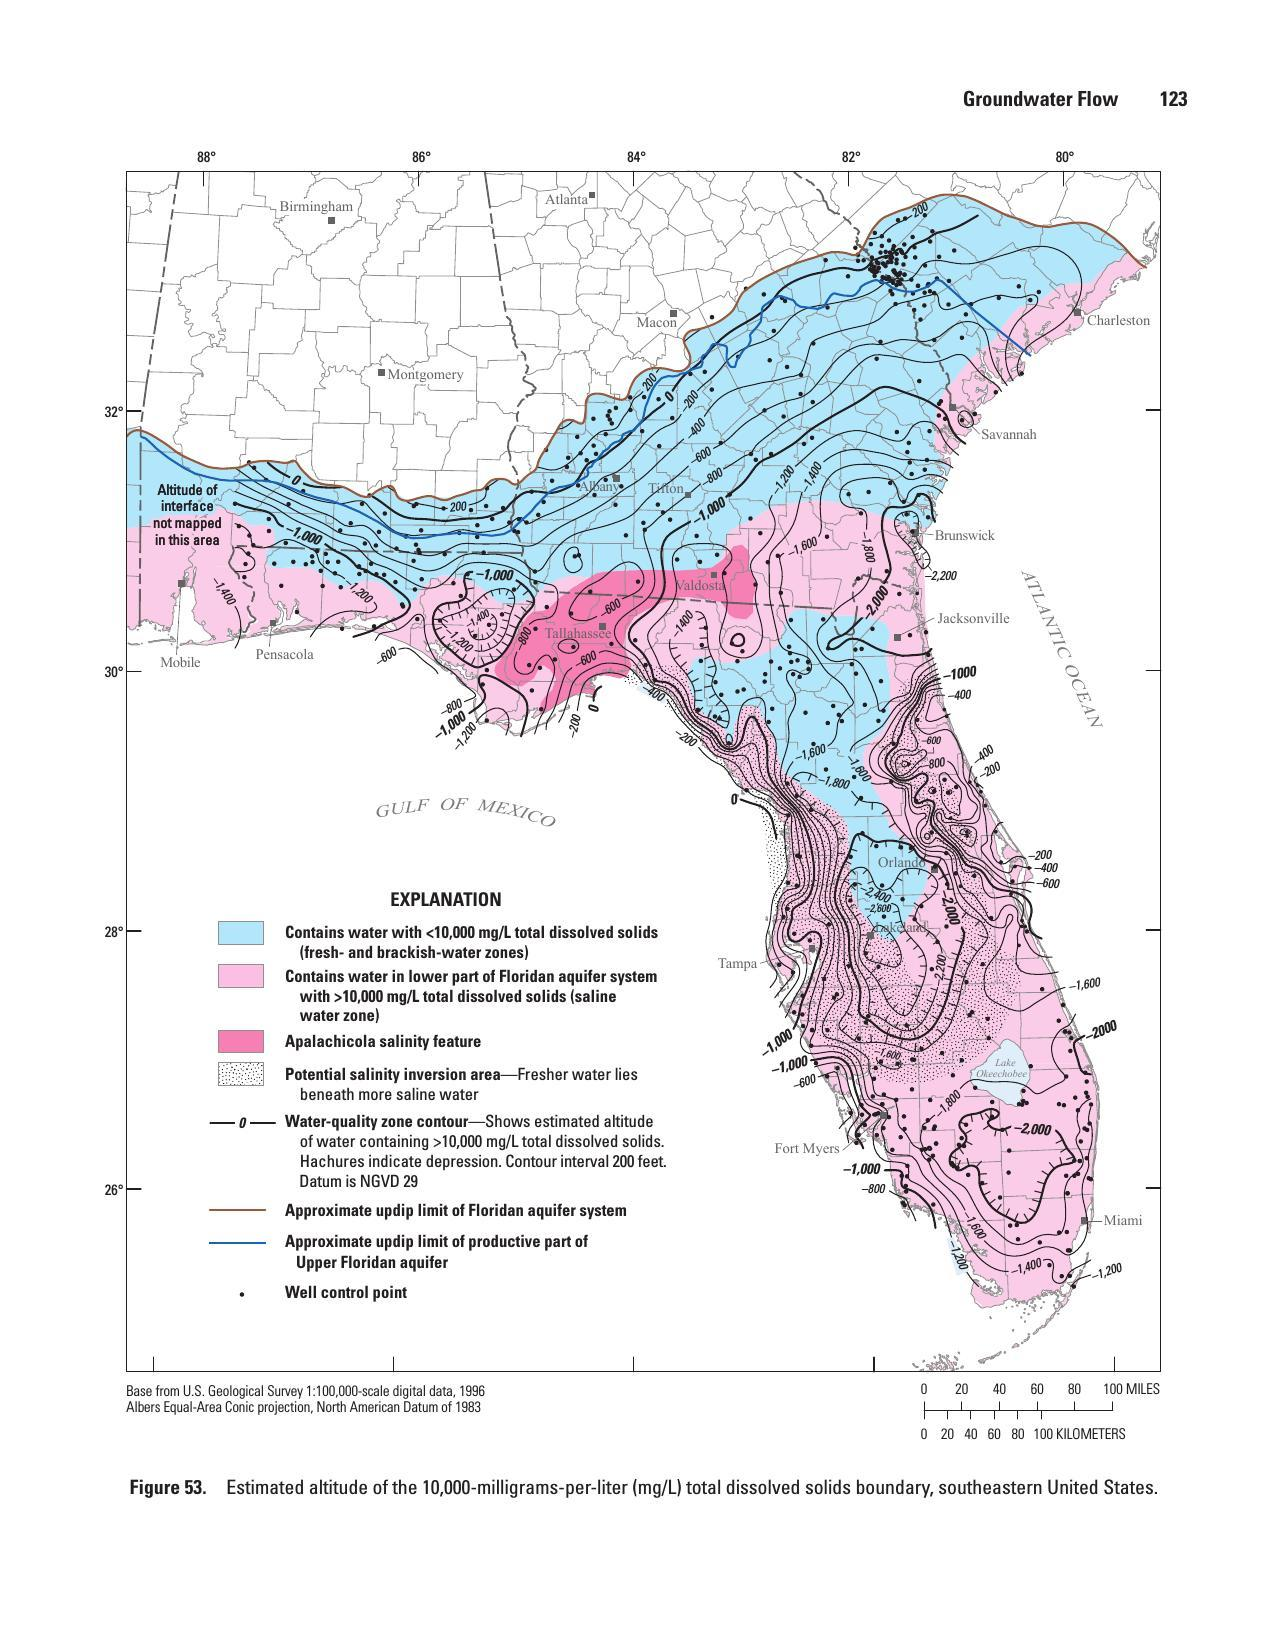 1275x1651 Figure 53. Estimated altitude of the 10,000-milligrams-per-liter (mg/L) total dissolved solids boundary, southeastern United States., in Revised Hydrogeologic Framework of the Floridan Aquifer System, by Lester J. Williams and Eve L. Kuniansky, f